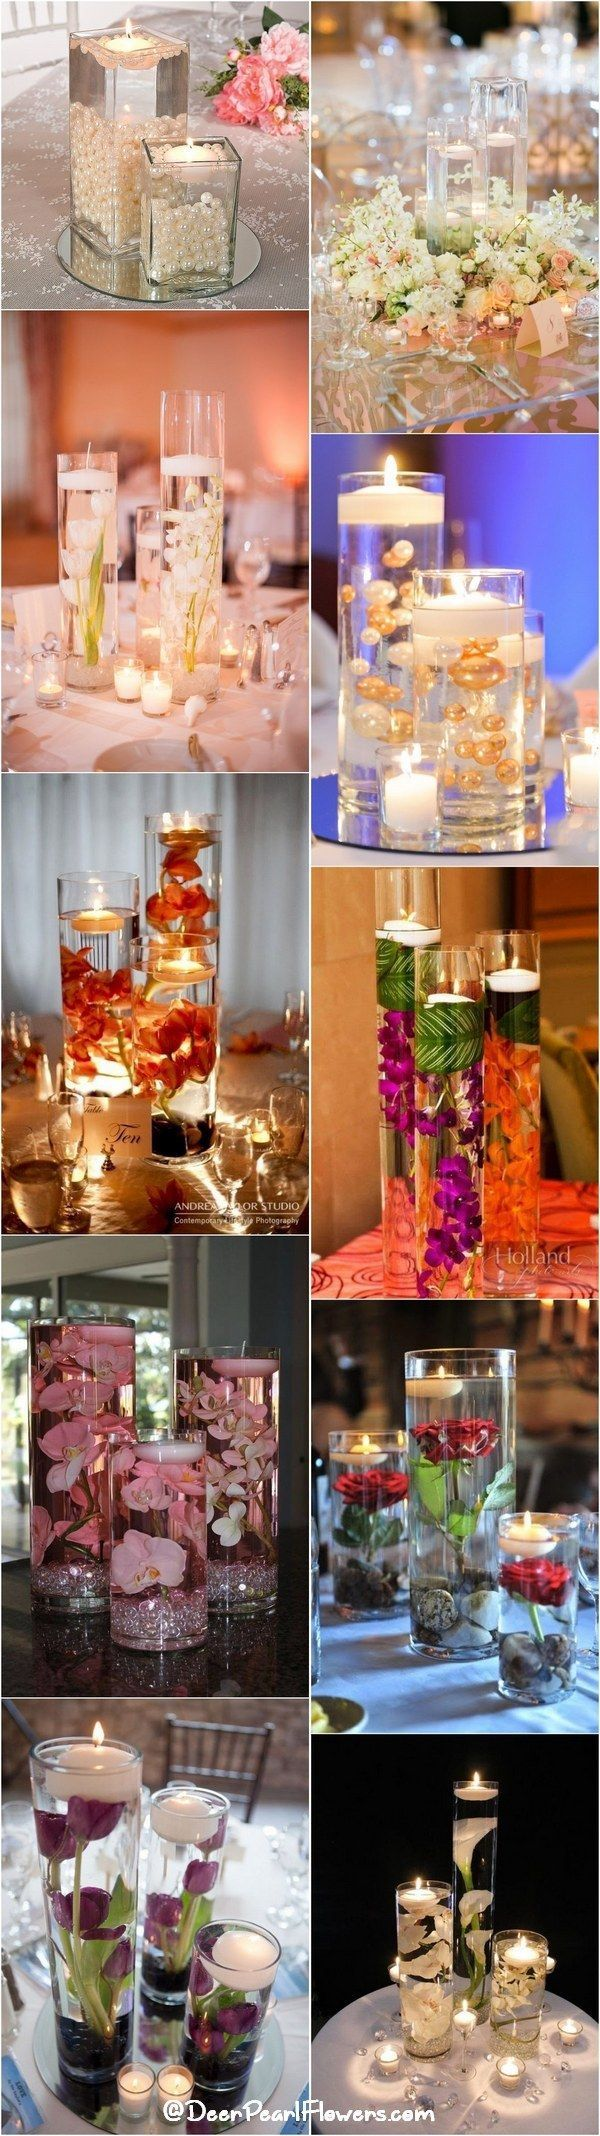 Floating wedding centerpiece ideas / http://www.deerpearlflowers.com/floating-wedding-centerpieces/